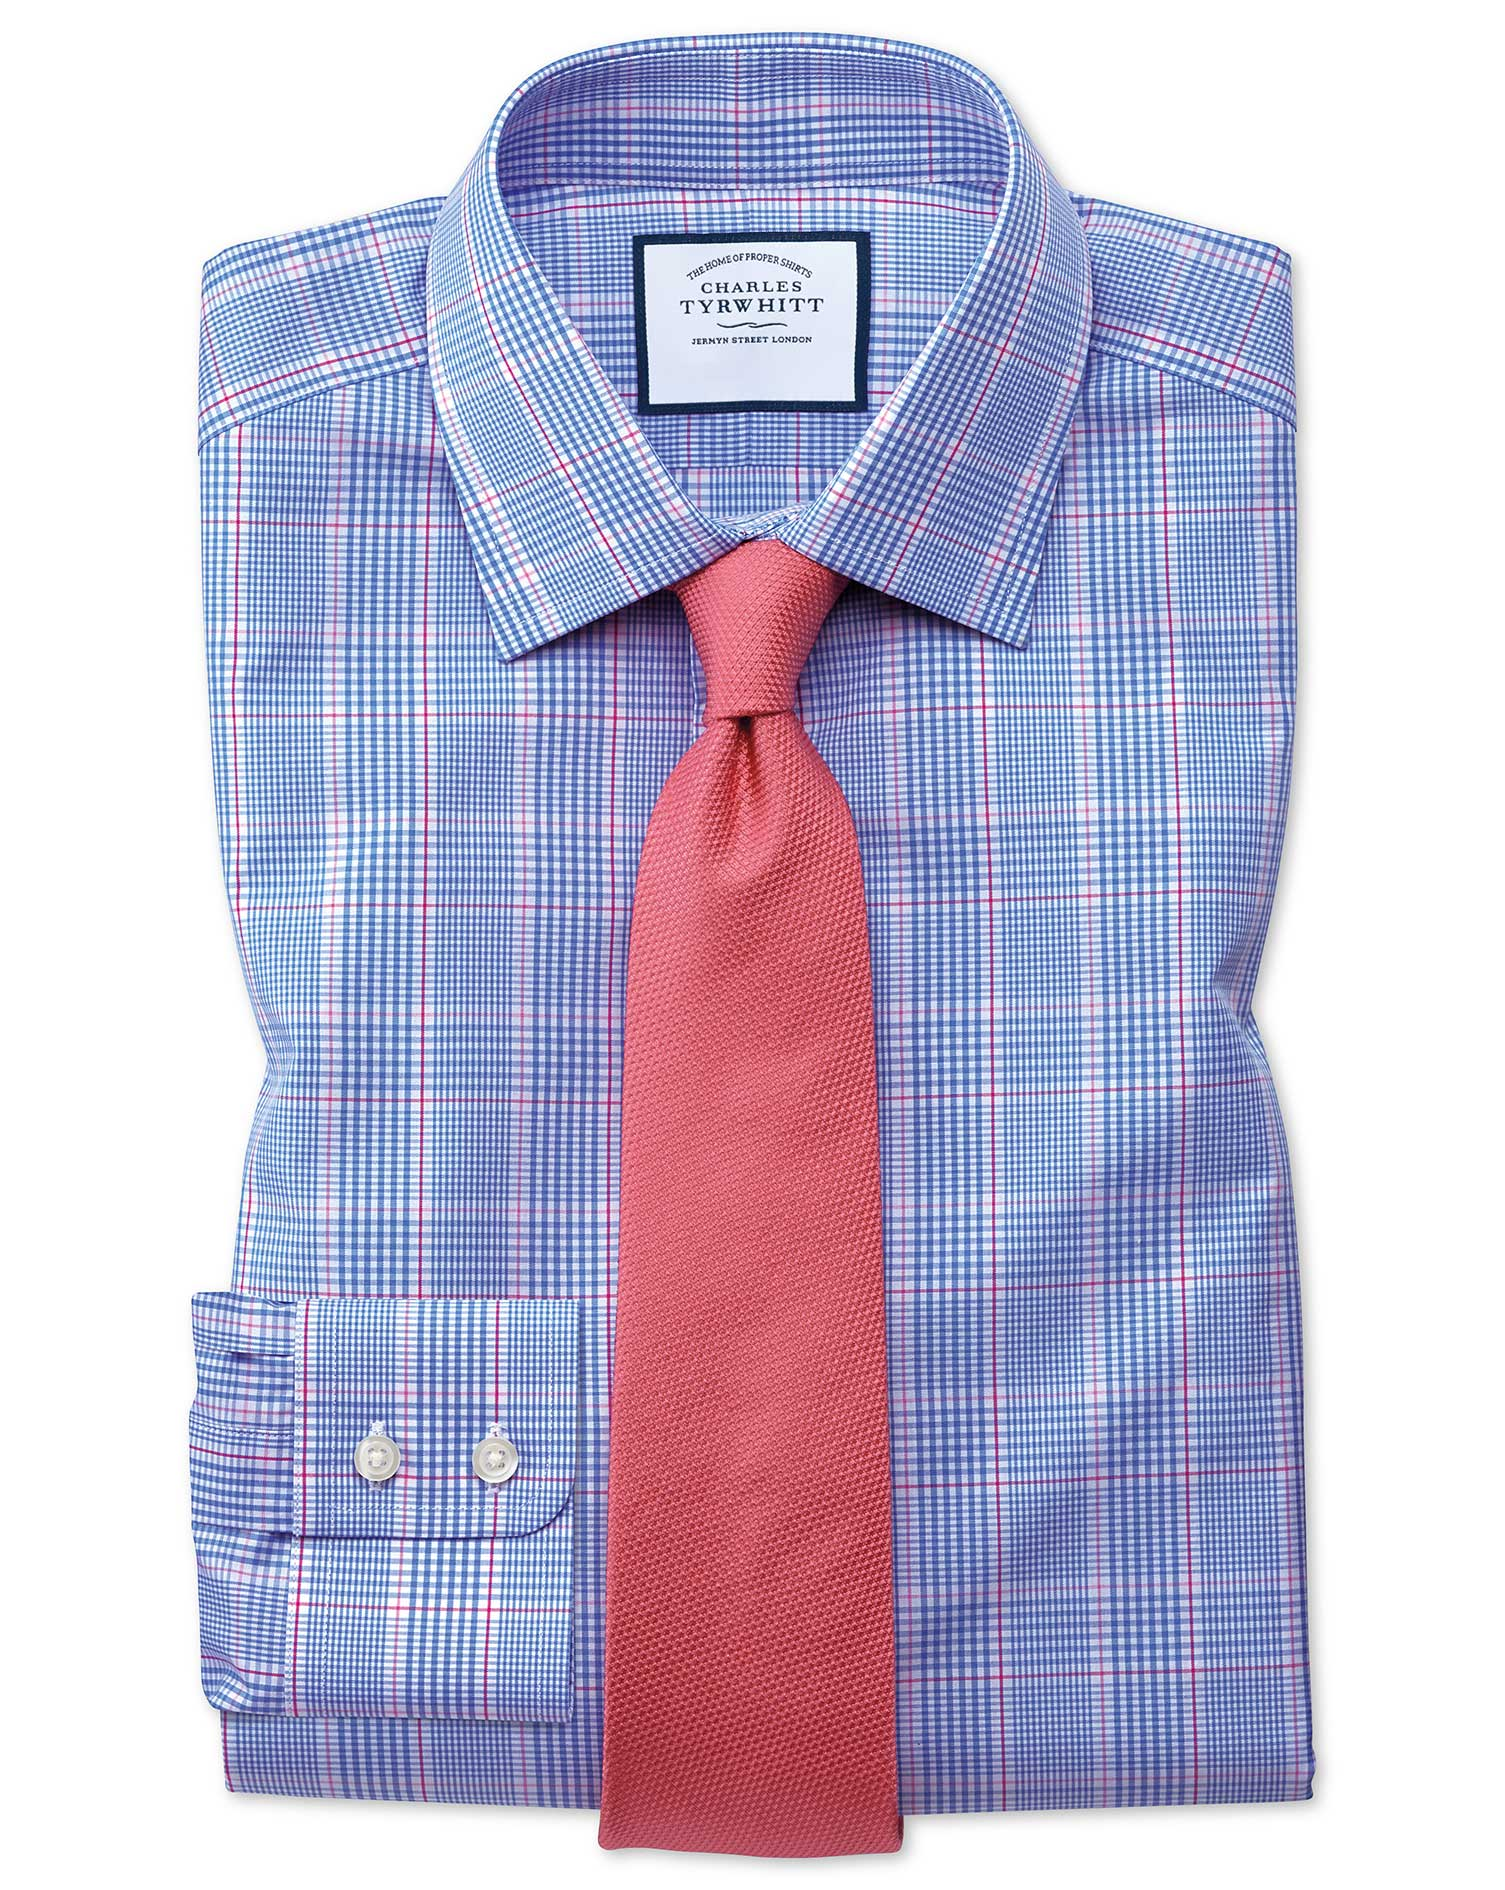 Slim Fit Prince Of Wales Check Blue and Pink Cotton Formal Shirt Single Cuff Size 15/35 by Charles T